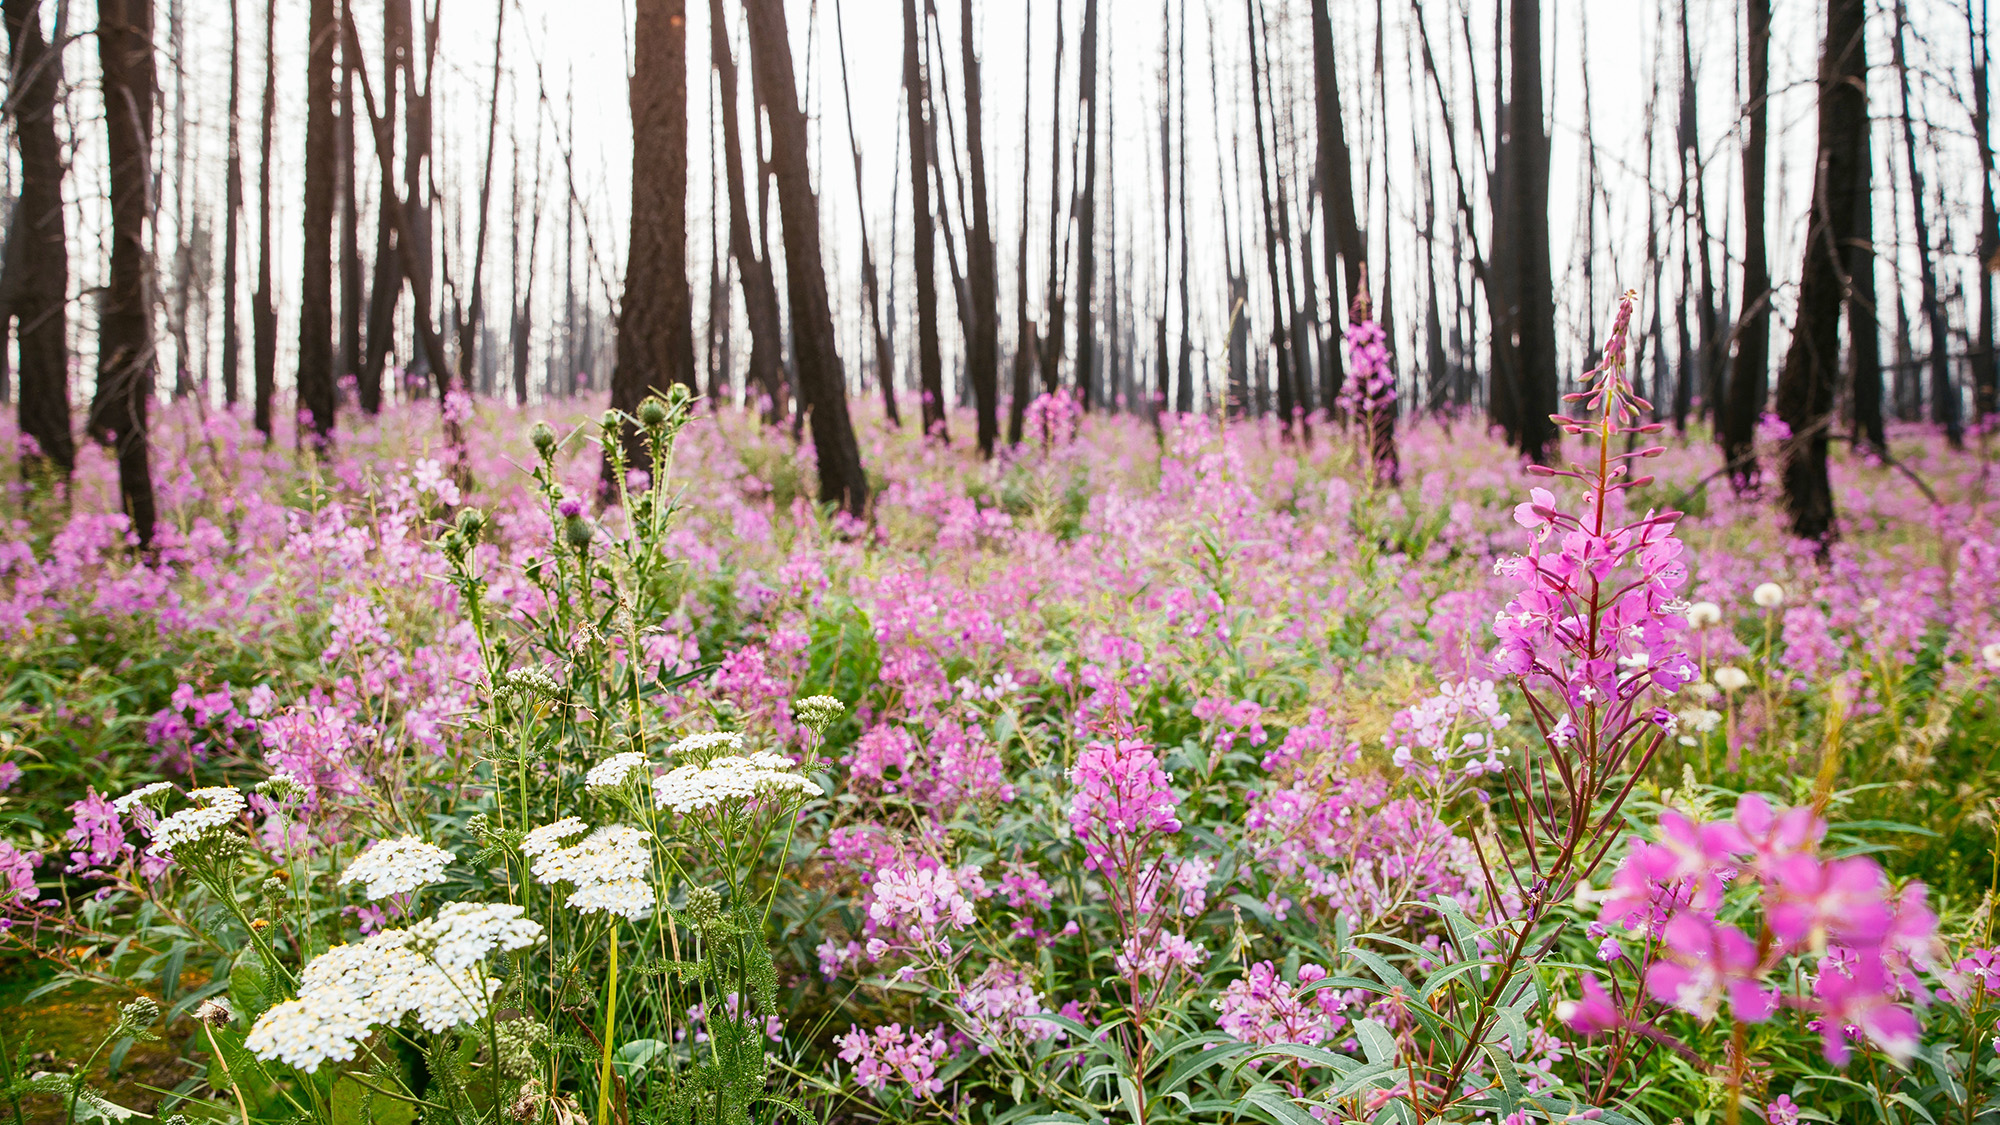 A sea of pink Fireweed wildflowers at Siwash Lake's Wildland Private Nature Reserve